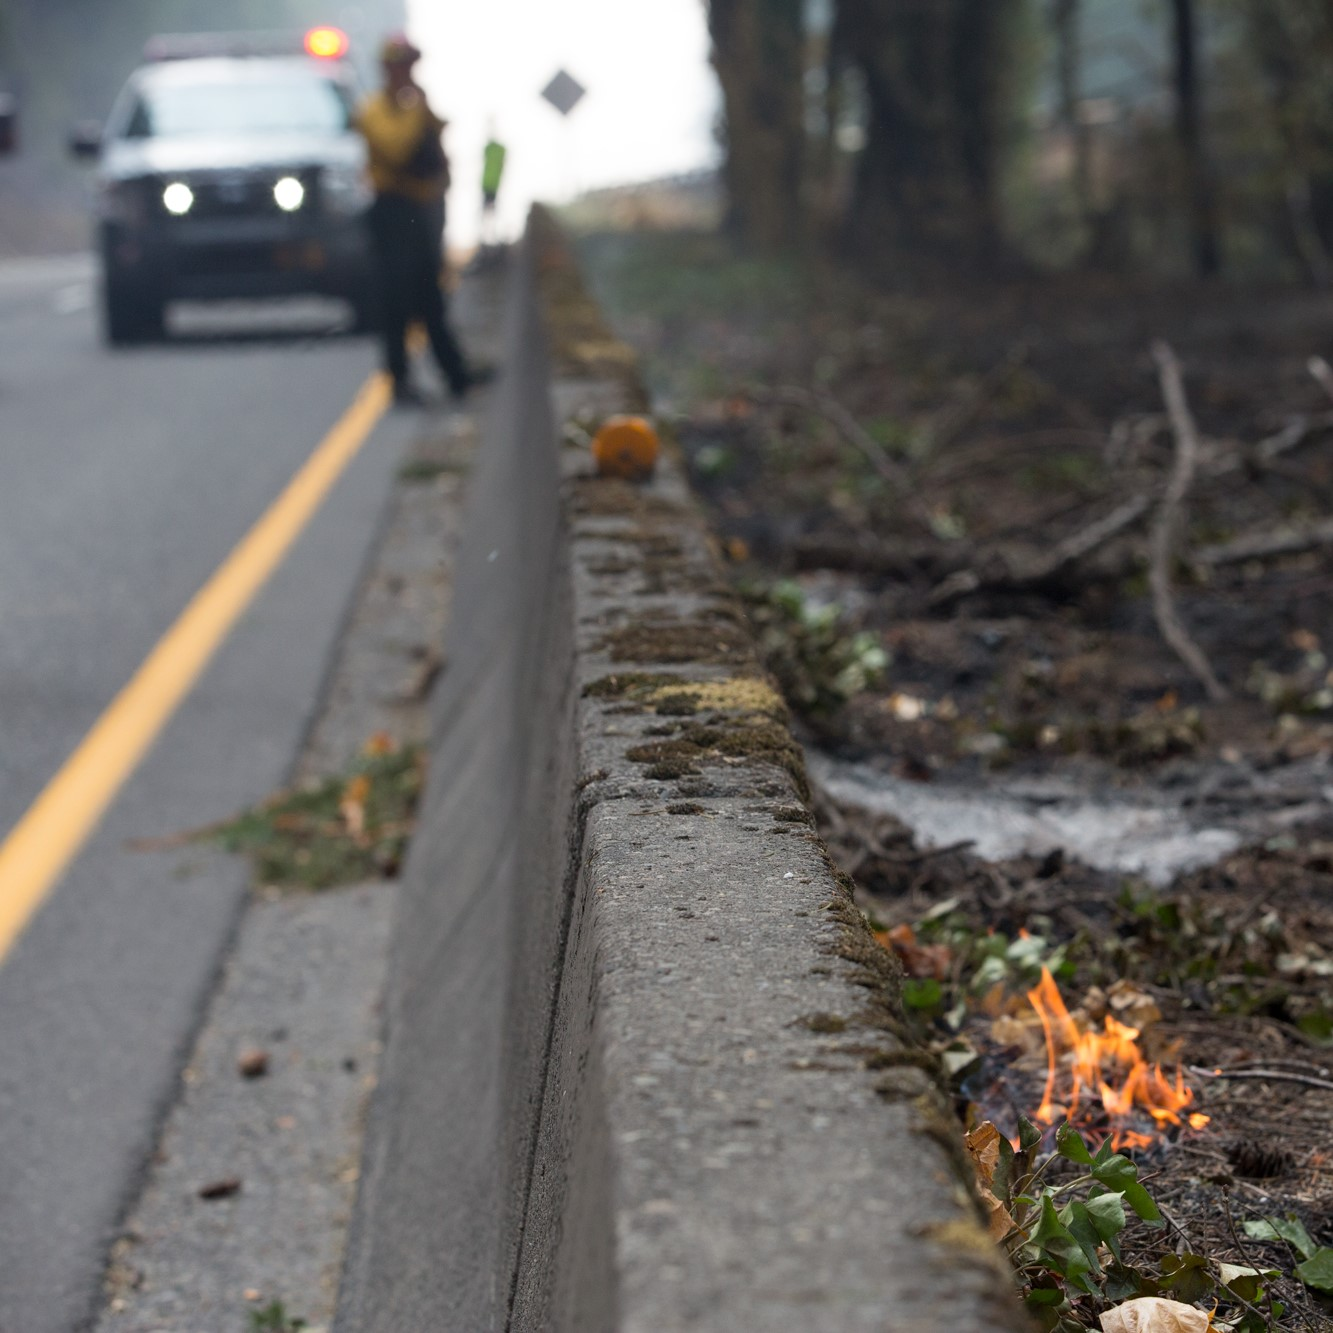 Small brush fire by the side of the road during Eagle Creek Fire. US Forest Service worker is standing next to their vehicle in the background.